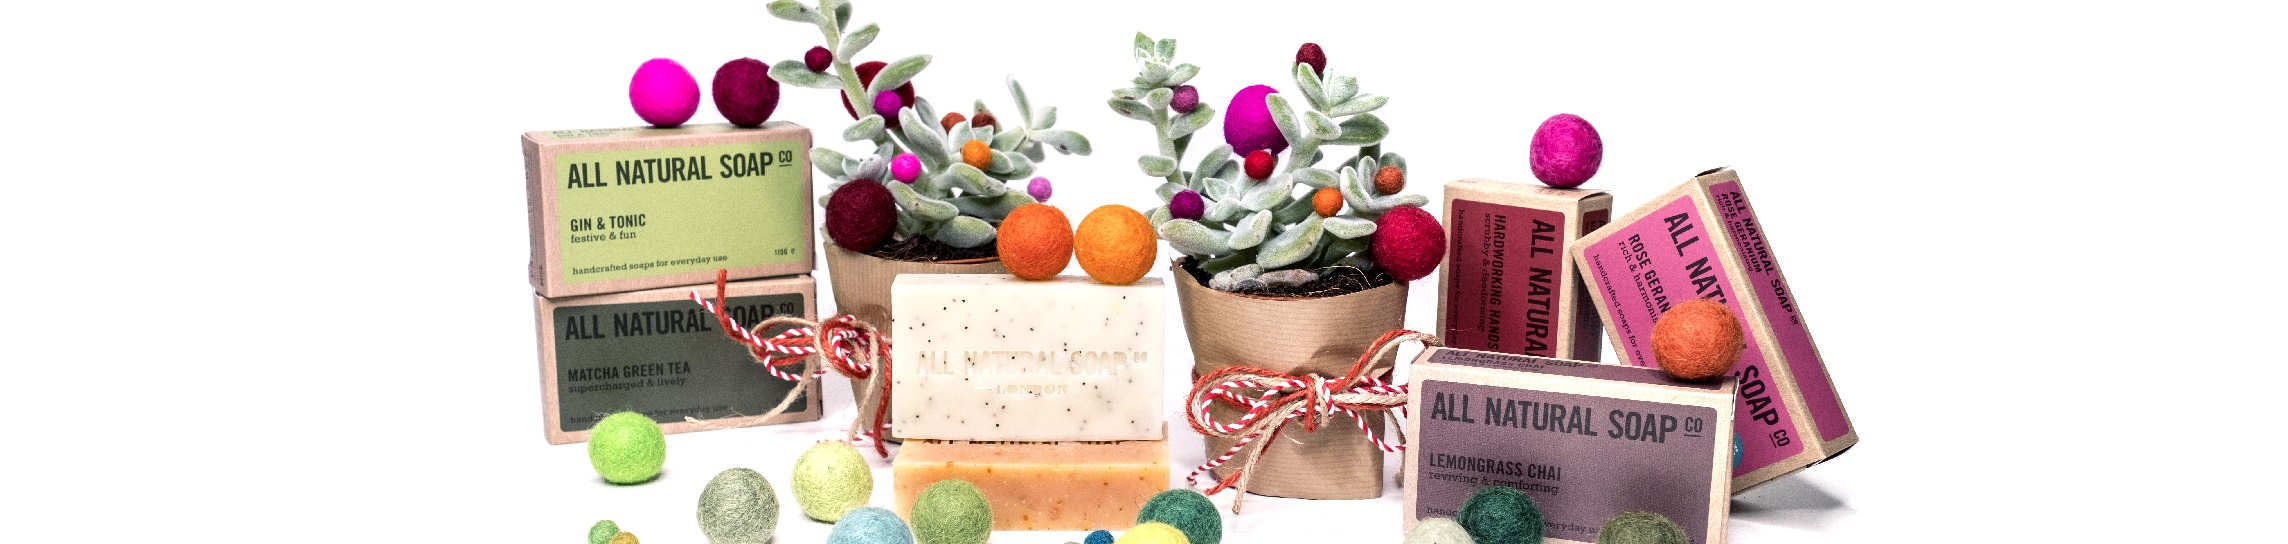 Christmas-2017_ALL-NATURAL-SOAP-Co